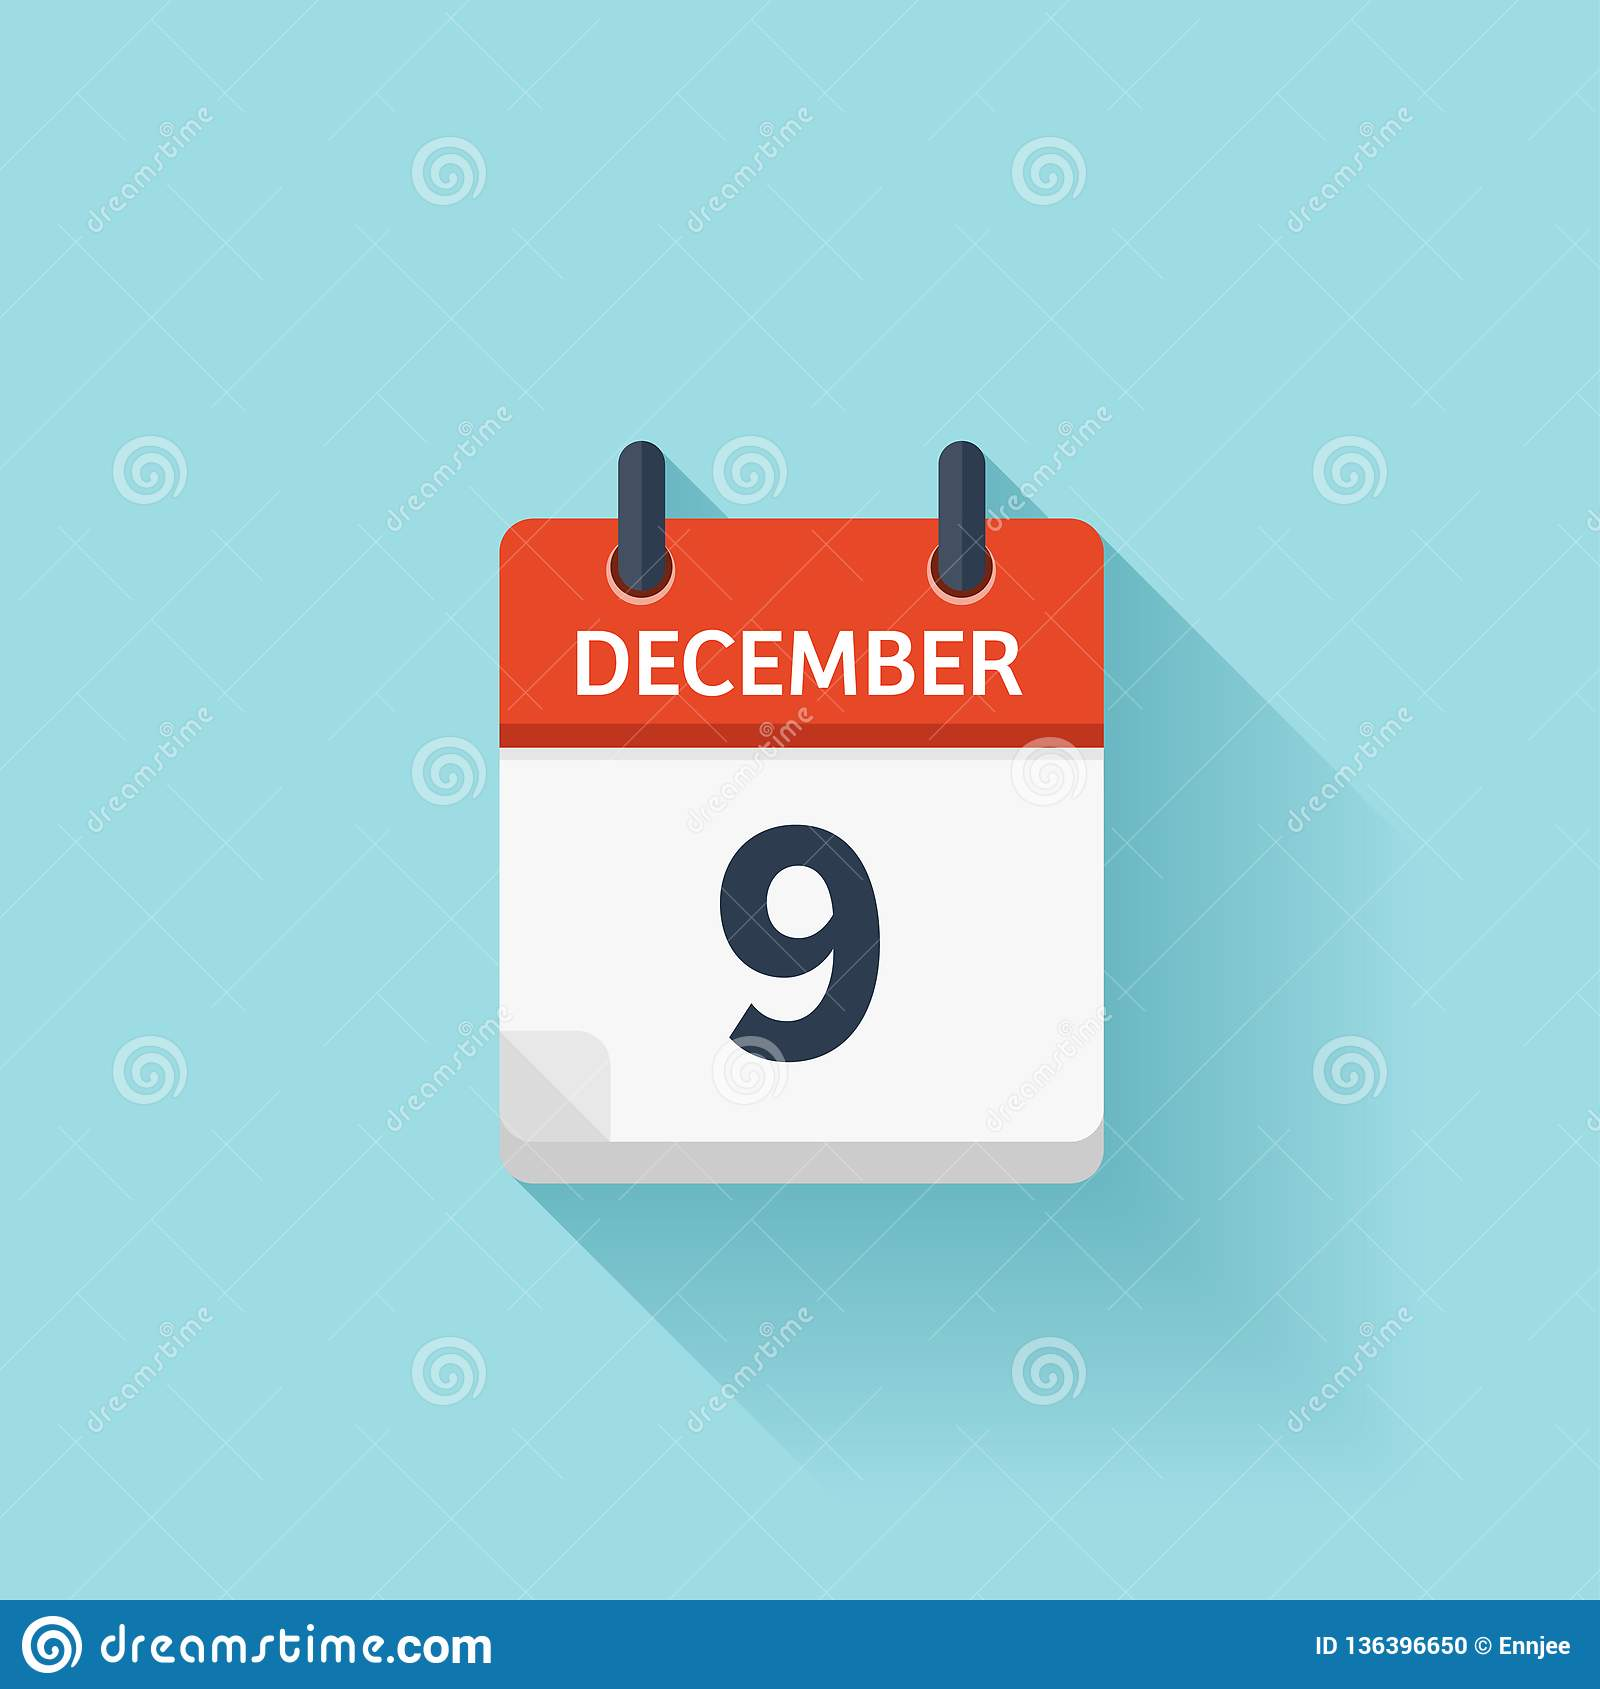 December 9 Vector Flat Daily Calendar Icon Date And Time Day